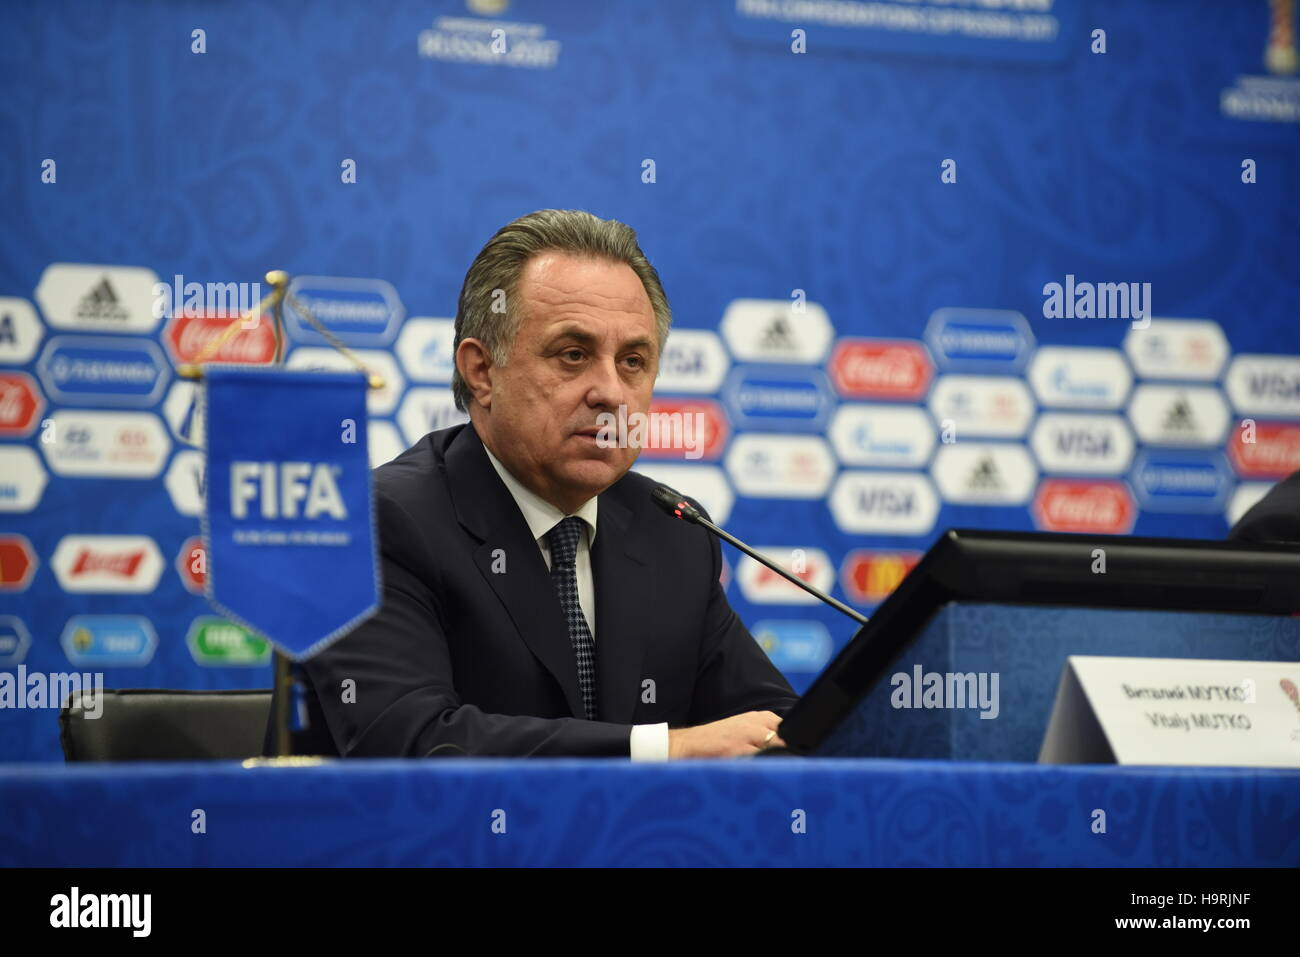 Kazan, Russia. 26th Nov, 2016. Russian Deputy Prime Minister Vitaly Mutko addresses the media during a press conference - Stock Image